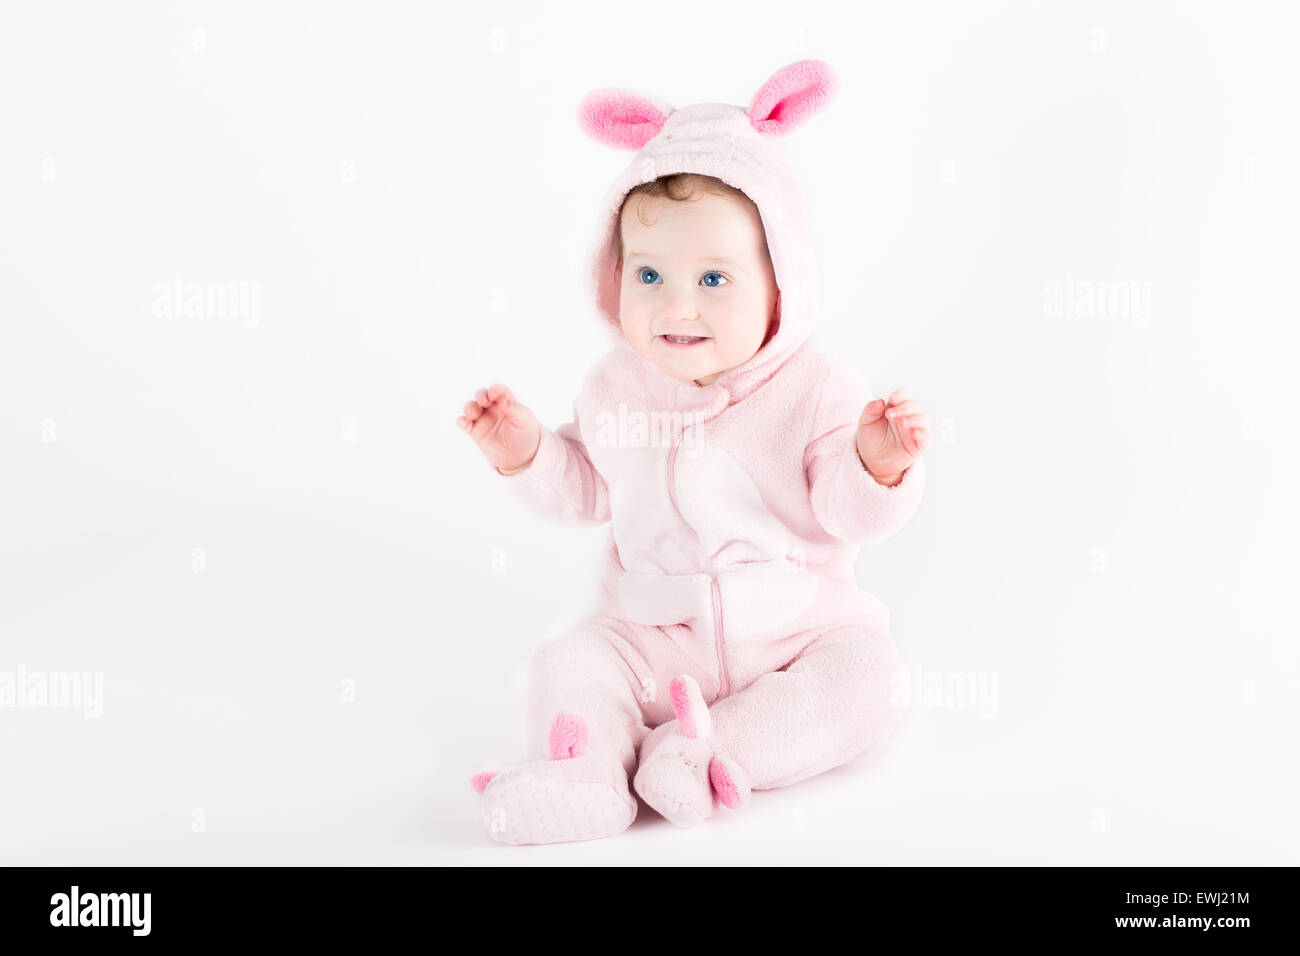 Cute funny baby dressed as an Easter bunny Stock Photo